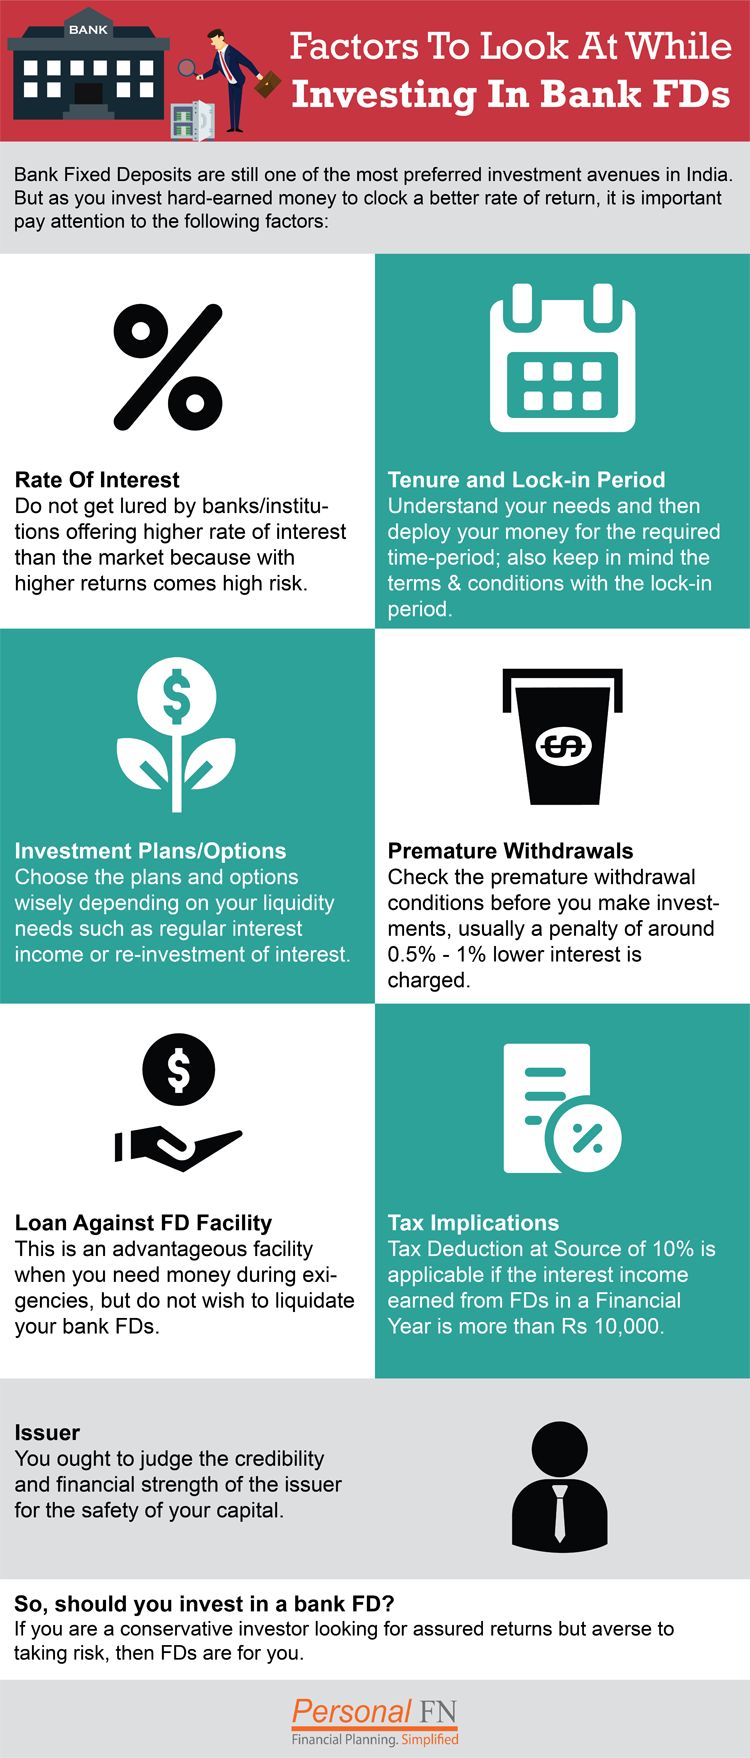 Factors To Look At While Investing In Bank FDs (Infographic)